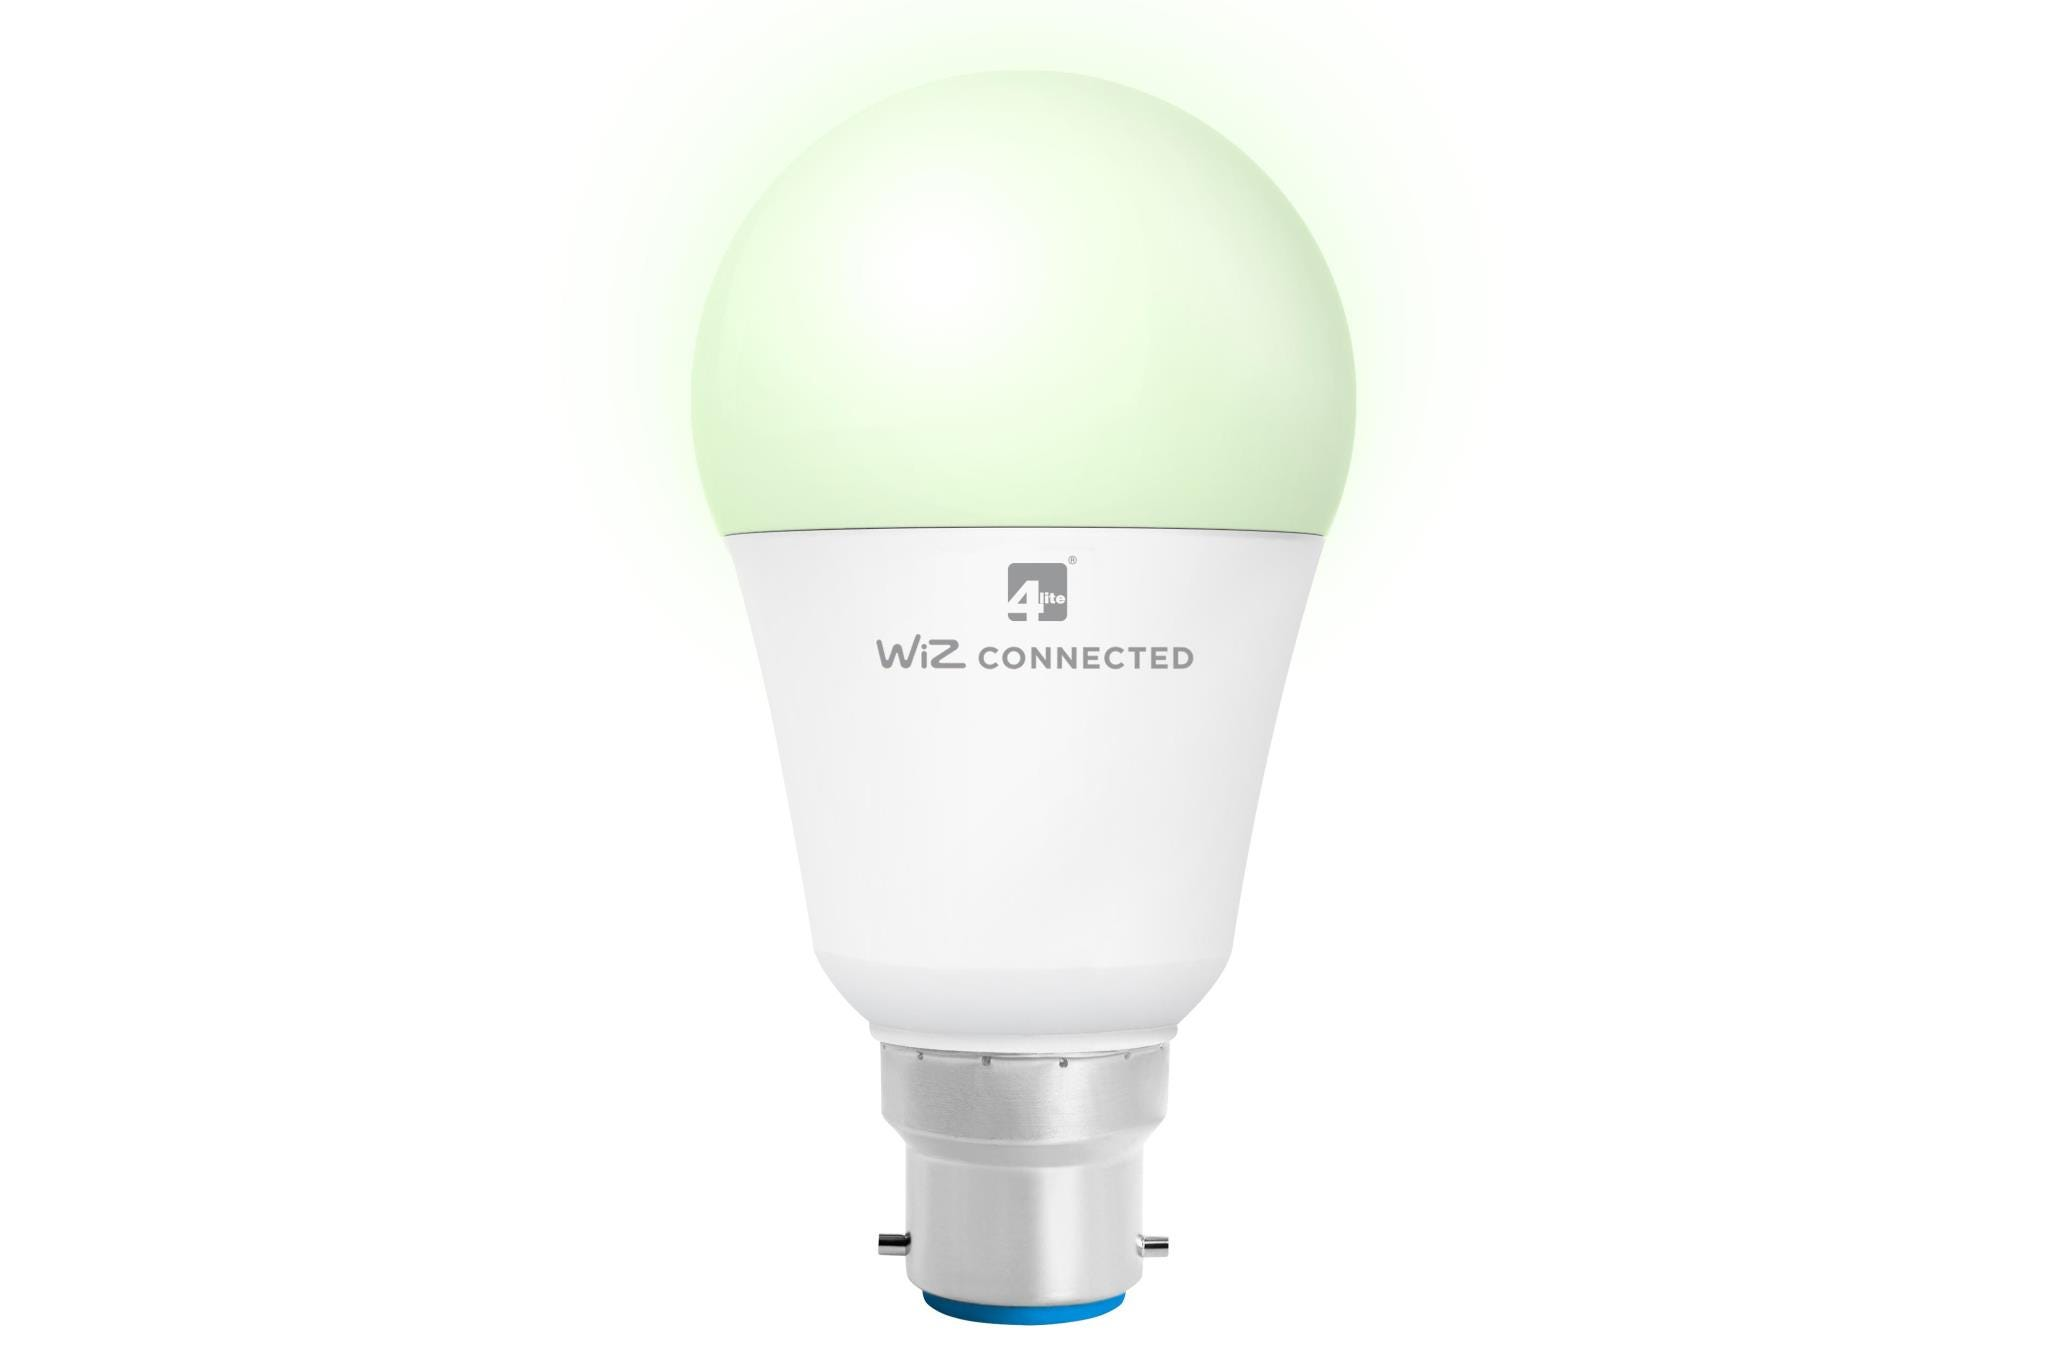 4lite WiZ Connected A60 Multicolour Dimmable WiFi/Bluetooth LED Smart Bulb - B22 Bayonet